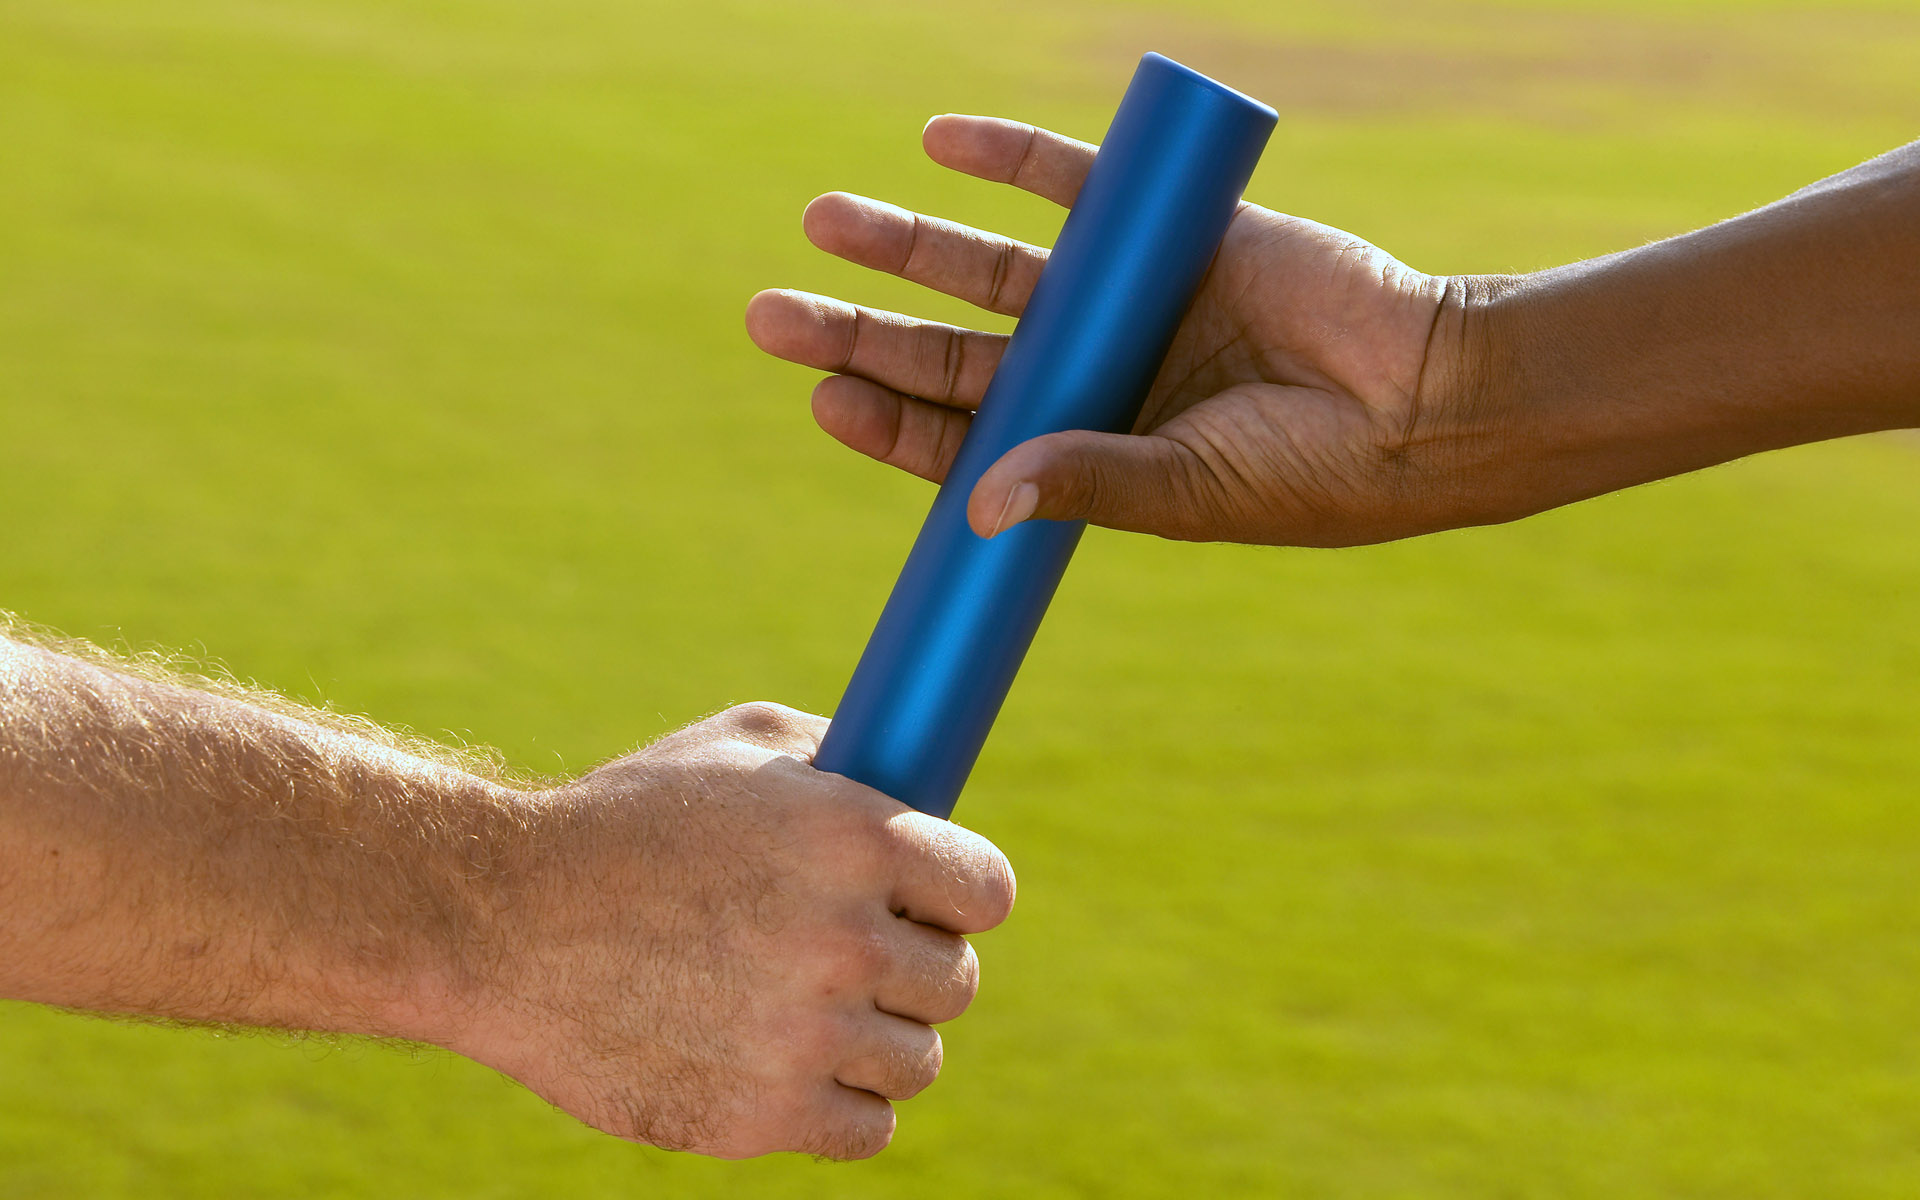 Hands Passing Baton at Sporting Event. Imagen por cortesía de Tableatny. https://www.flickr.com/photos/53370644@N06 https://creativecommons.org/licenses/by/2.0/